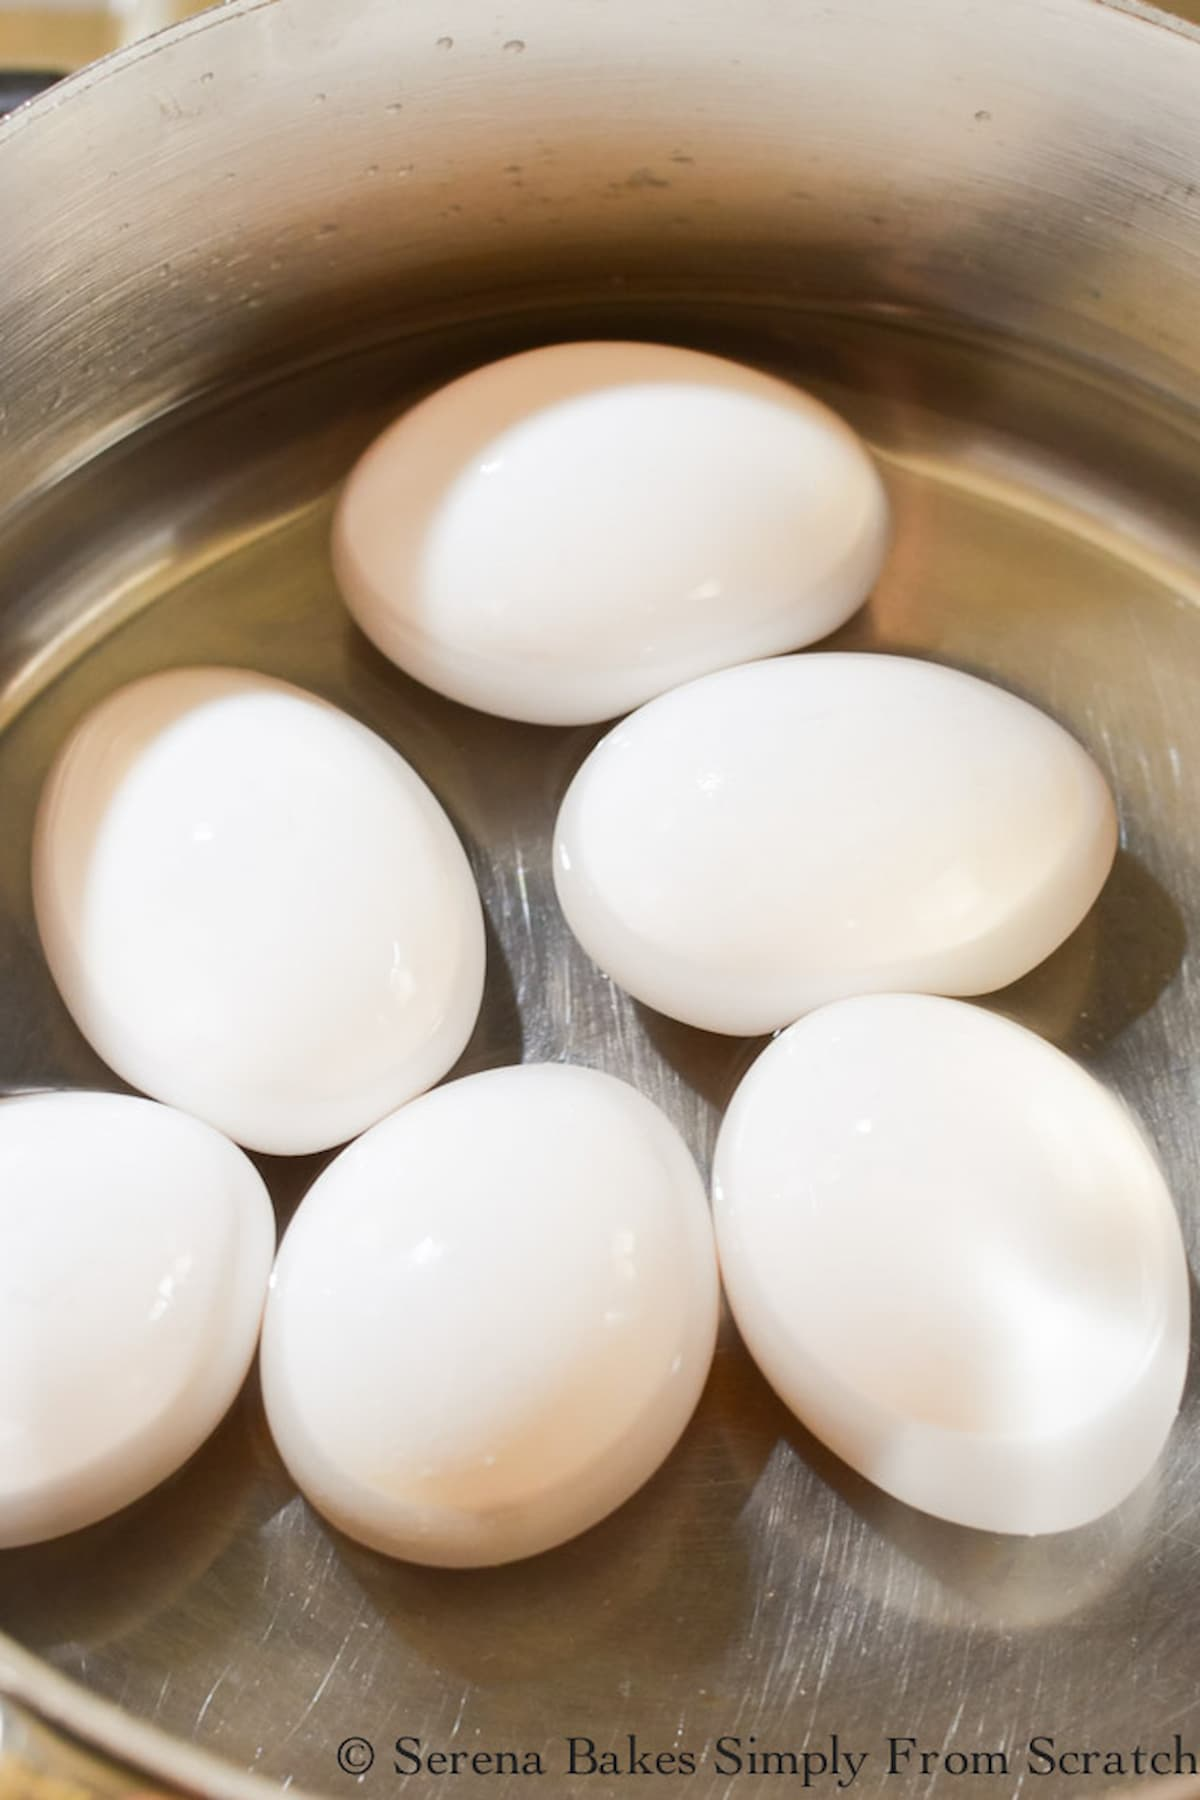 6 whole Eggs in a stainless steel pot filled half way up the eggs with water.